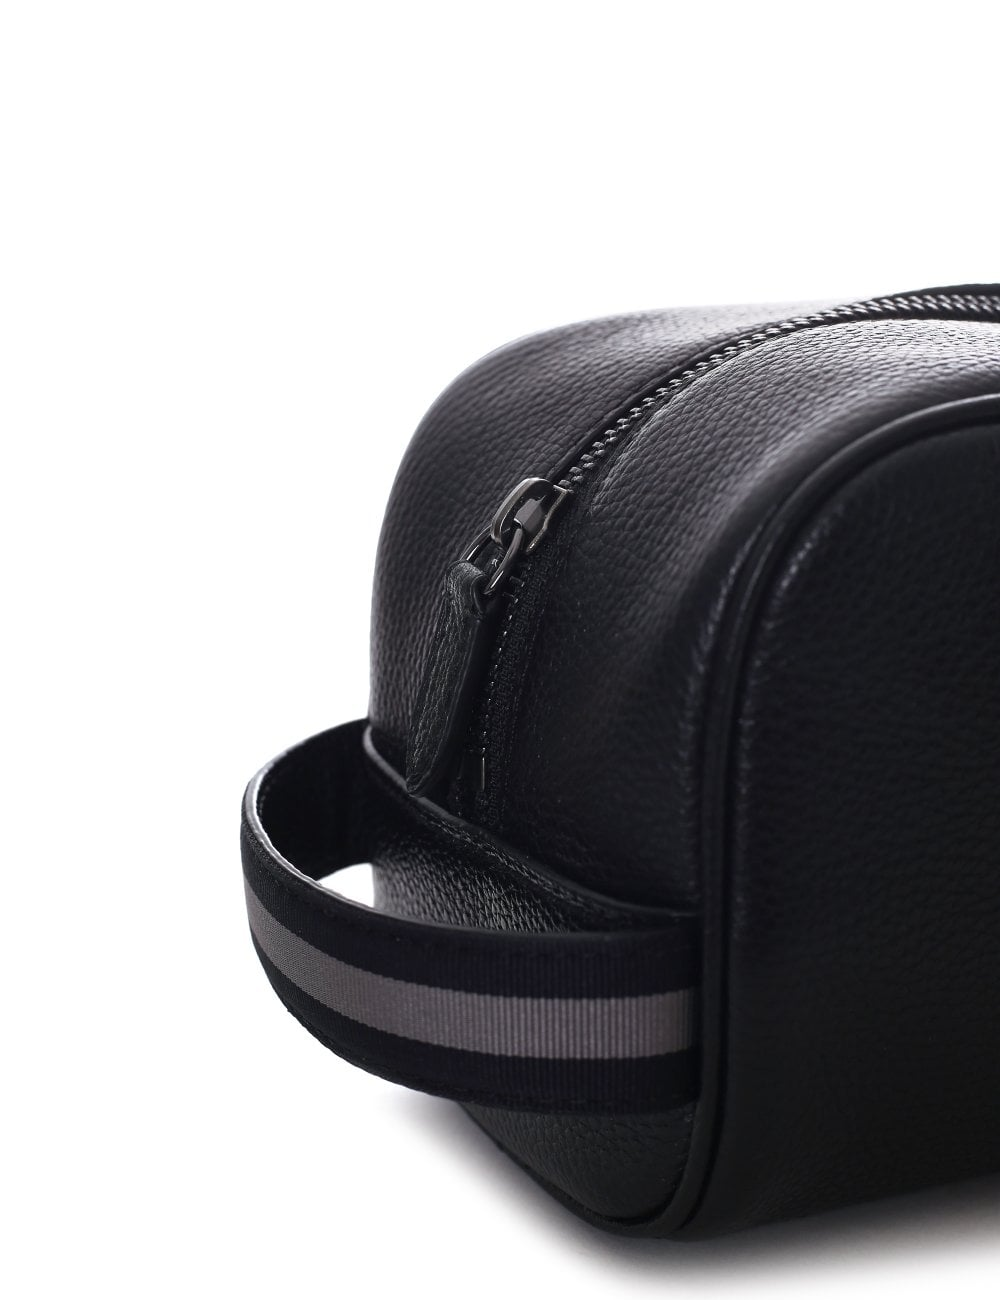 23e6f476b ... Accessories  Polo Ralph Lauren Small Men s Travel Kit Bag. Tap image to  zoom. Small Men  039 s Travel ...